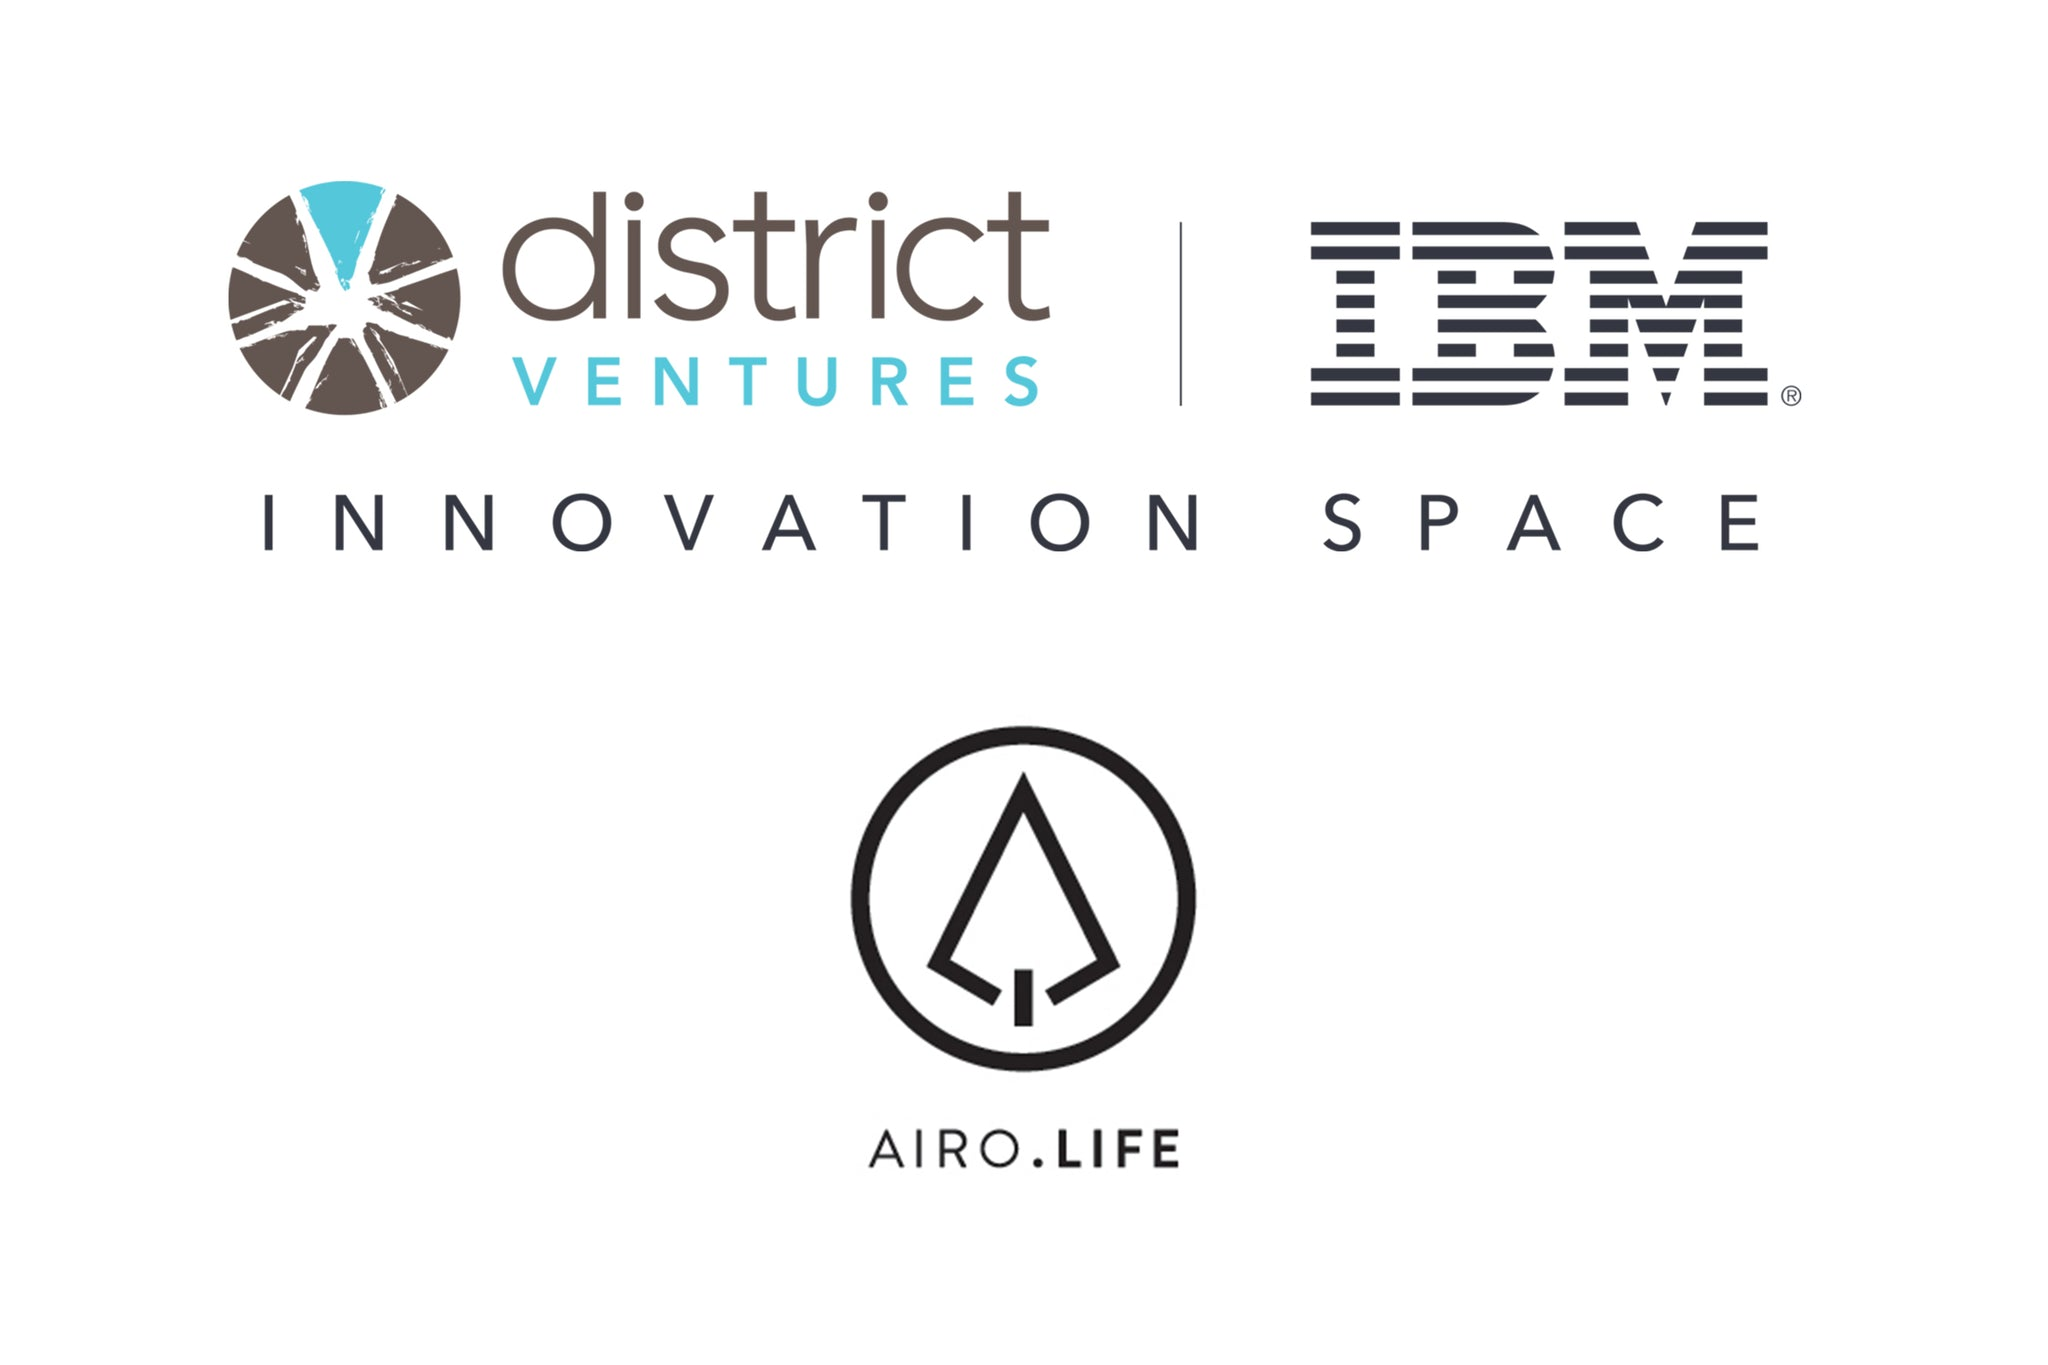 District Ventures | IBM Innovation Space & AIRO.LIFE